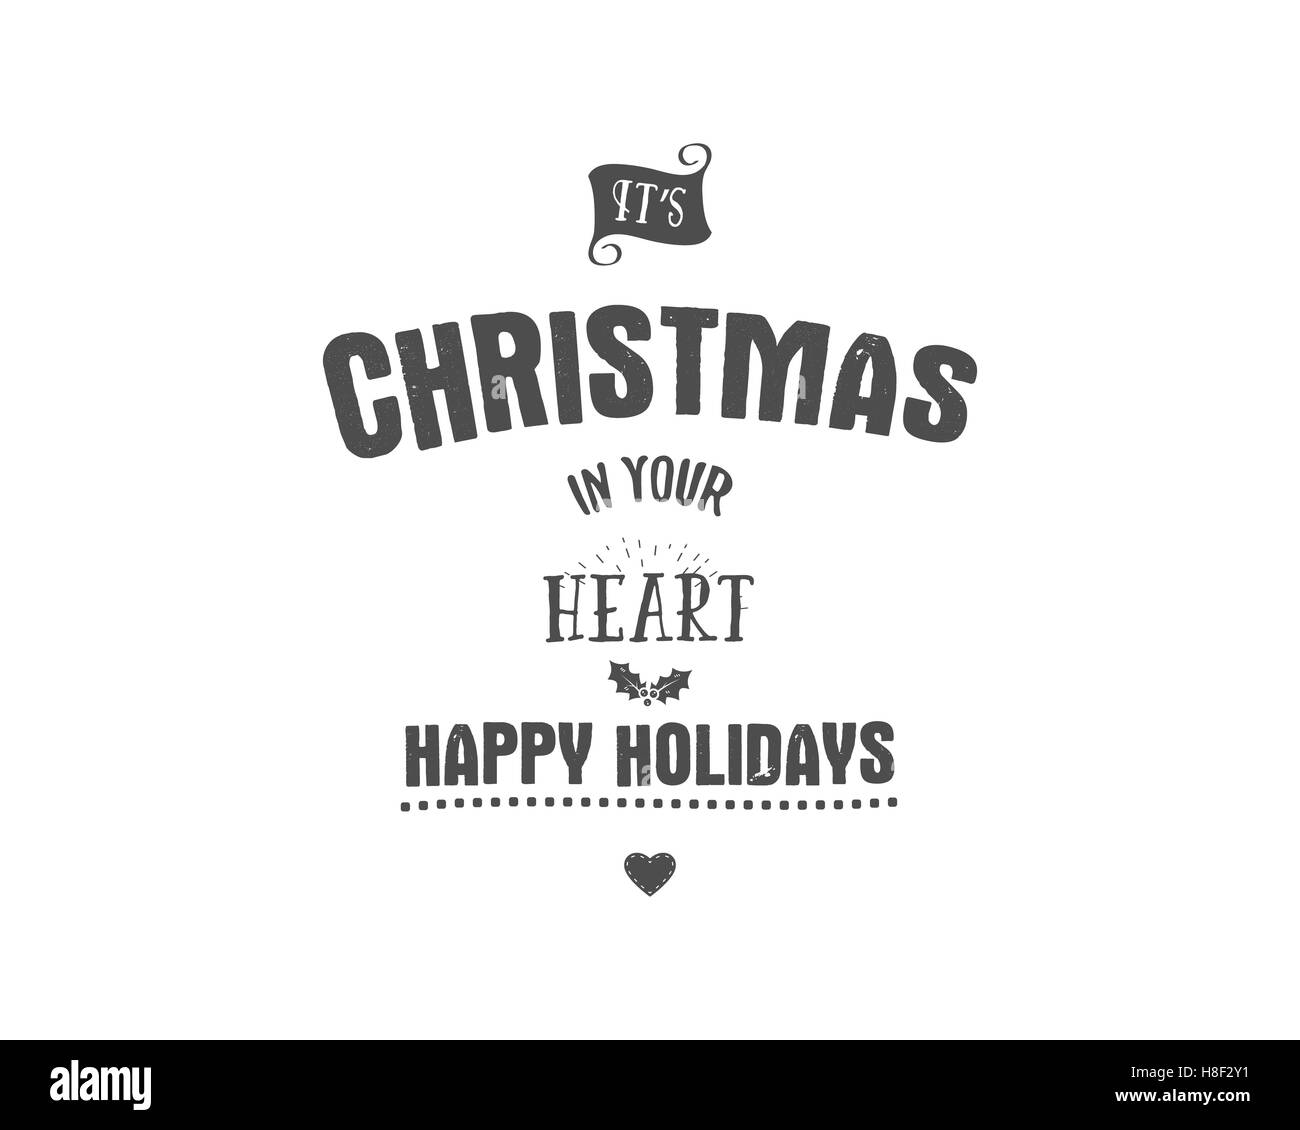 Merry Christmas Lettering Wishes Clipart For Holiday Season Cards